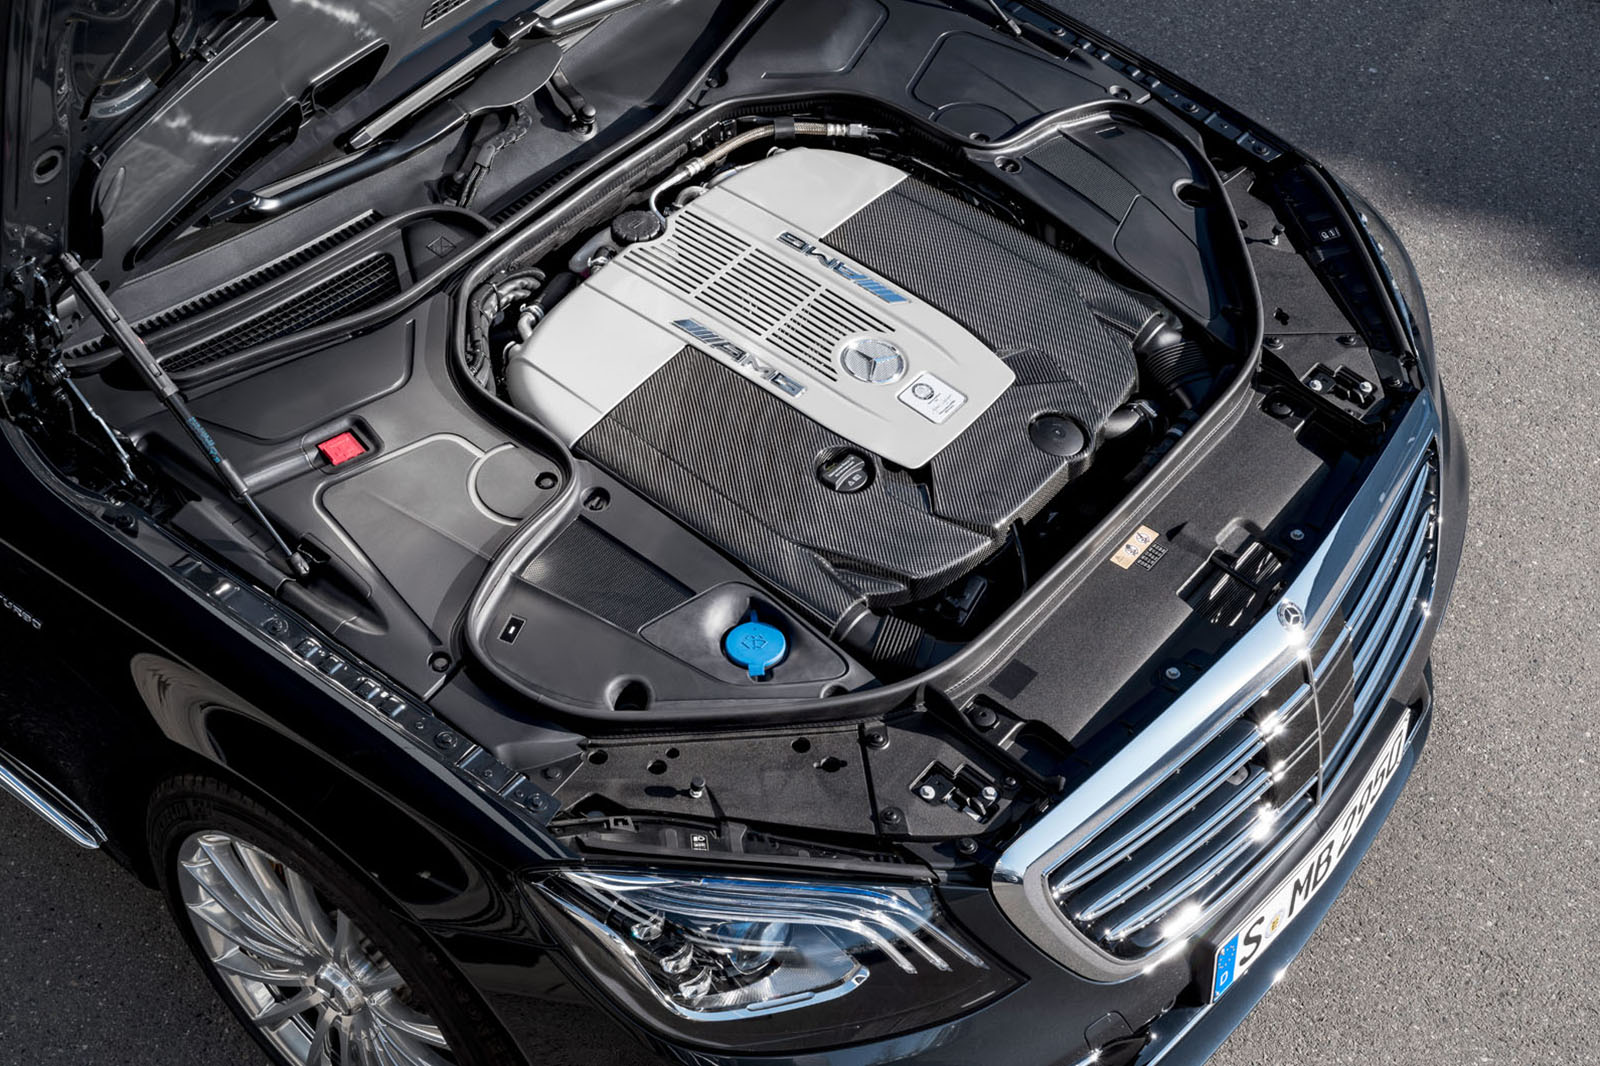 2017 Mercedes Benz S Class To Front New Engine Line Up Autocar Remote Starter An Integrated Generator As Part Of A Mild Hybrid Drivetrain Strategy Aimed At Netting Greater Performance And Reduced Fuel Consumption